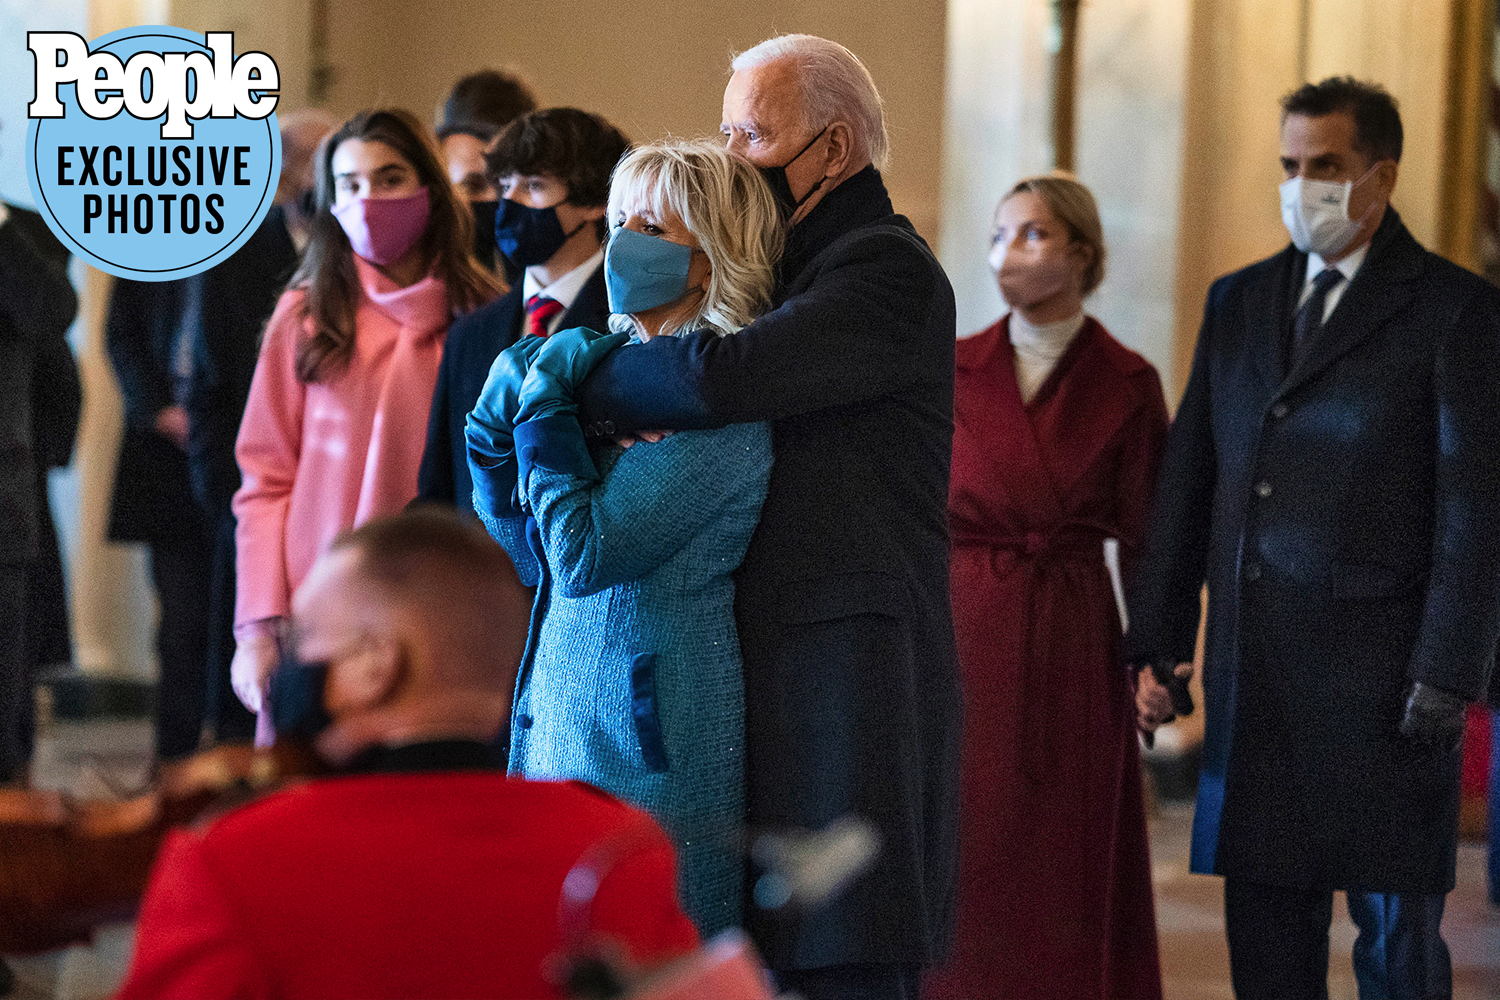 Joe Biden and family at inauguration